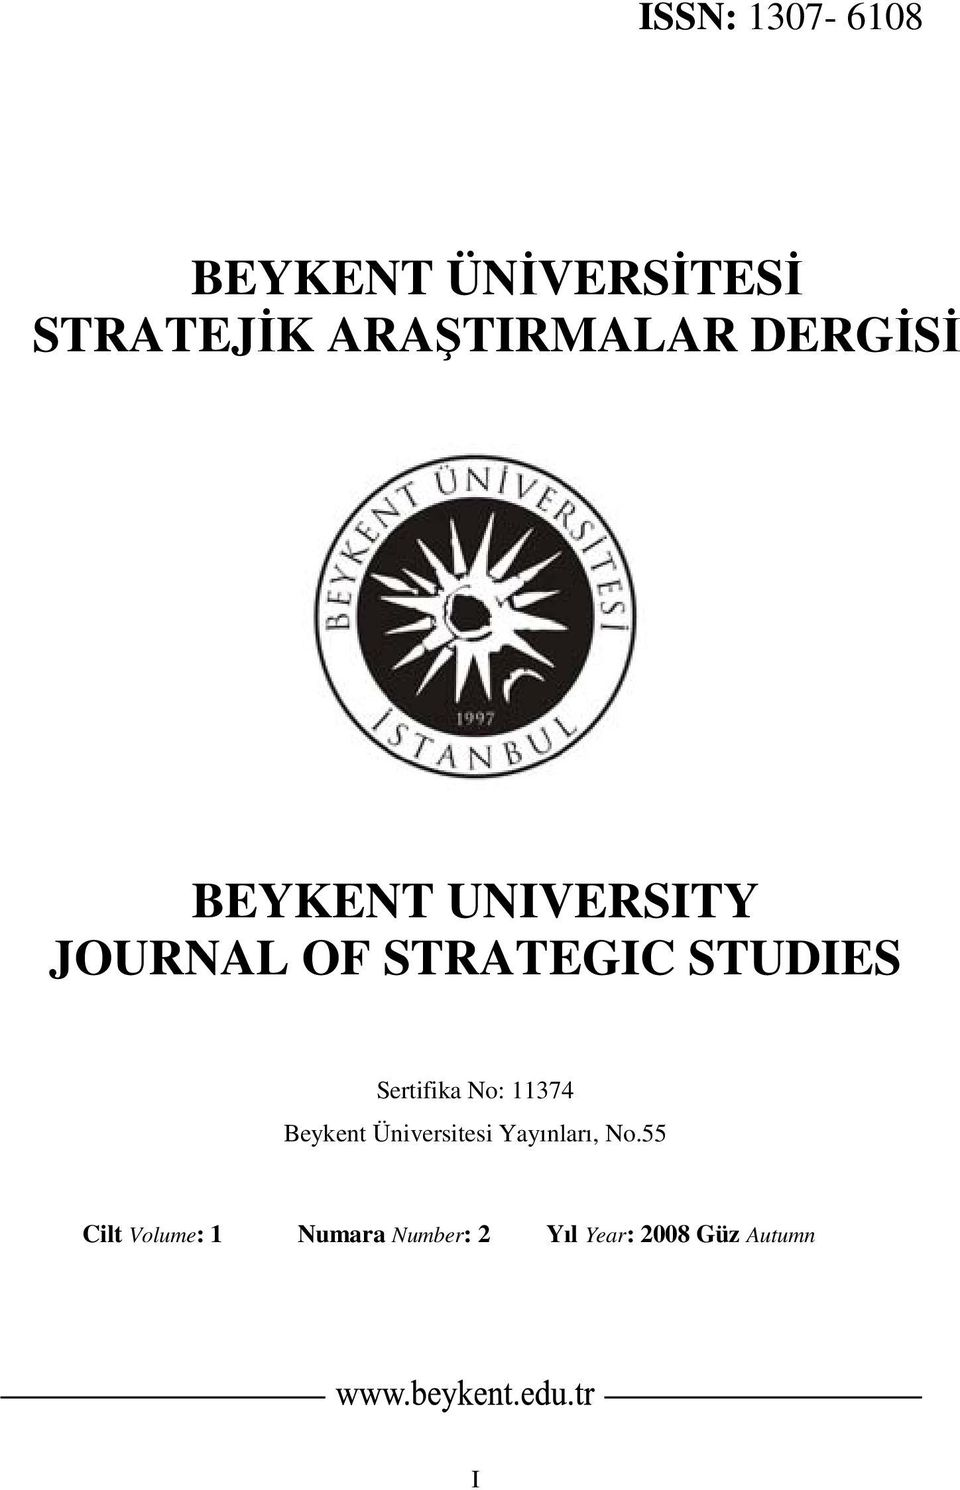 STRATEGIC STUDIES Sertifika No: 11374 Beykent Üniversitesi